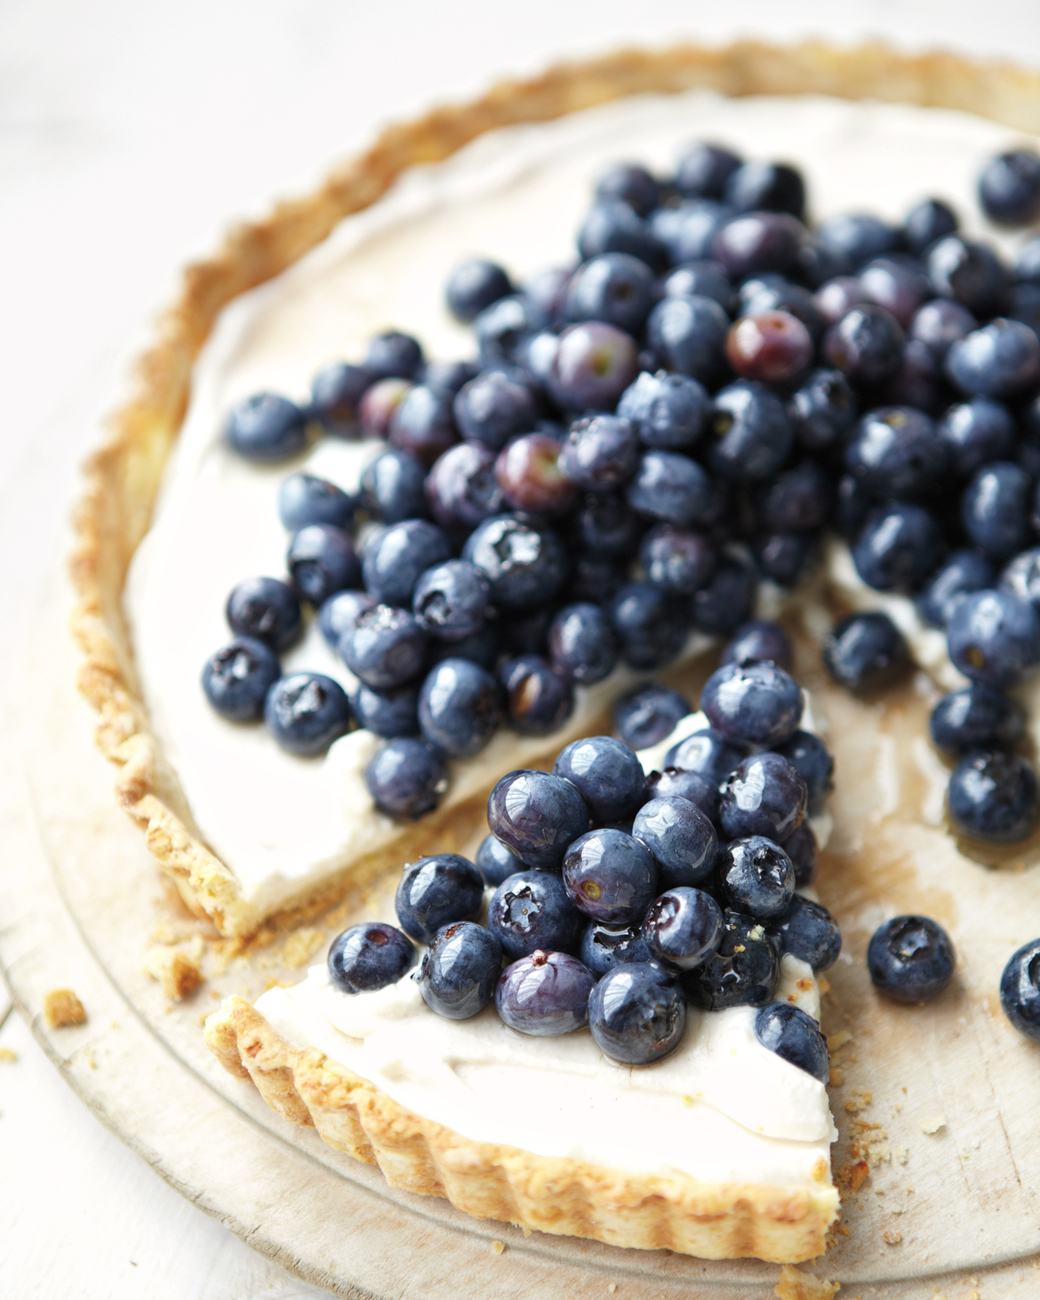 Blueberry ricotta tart